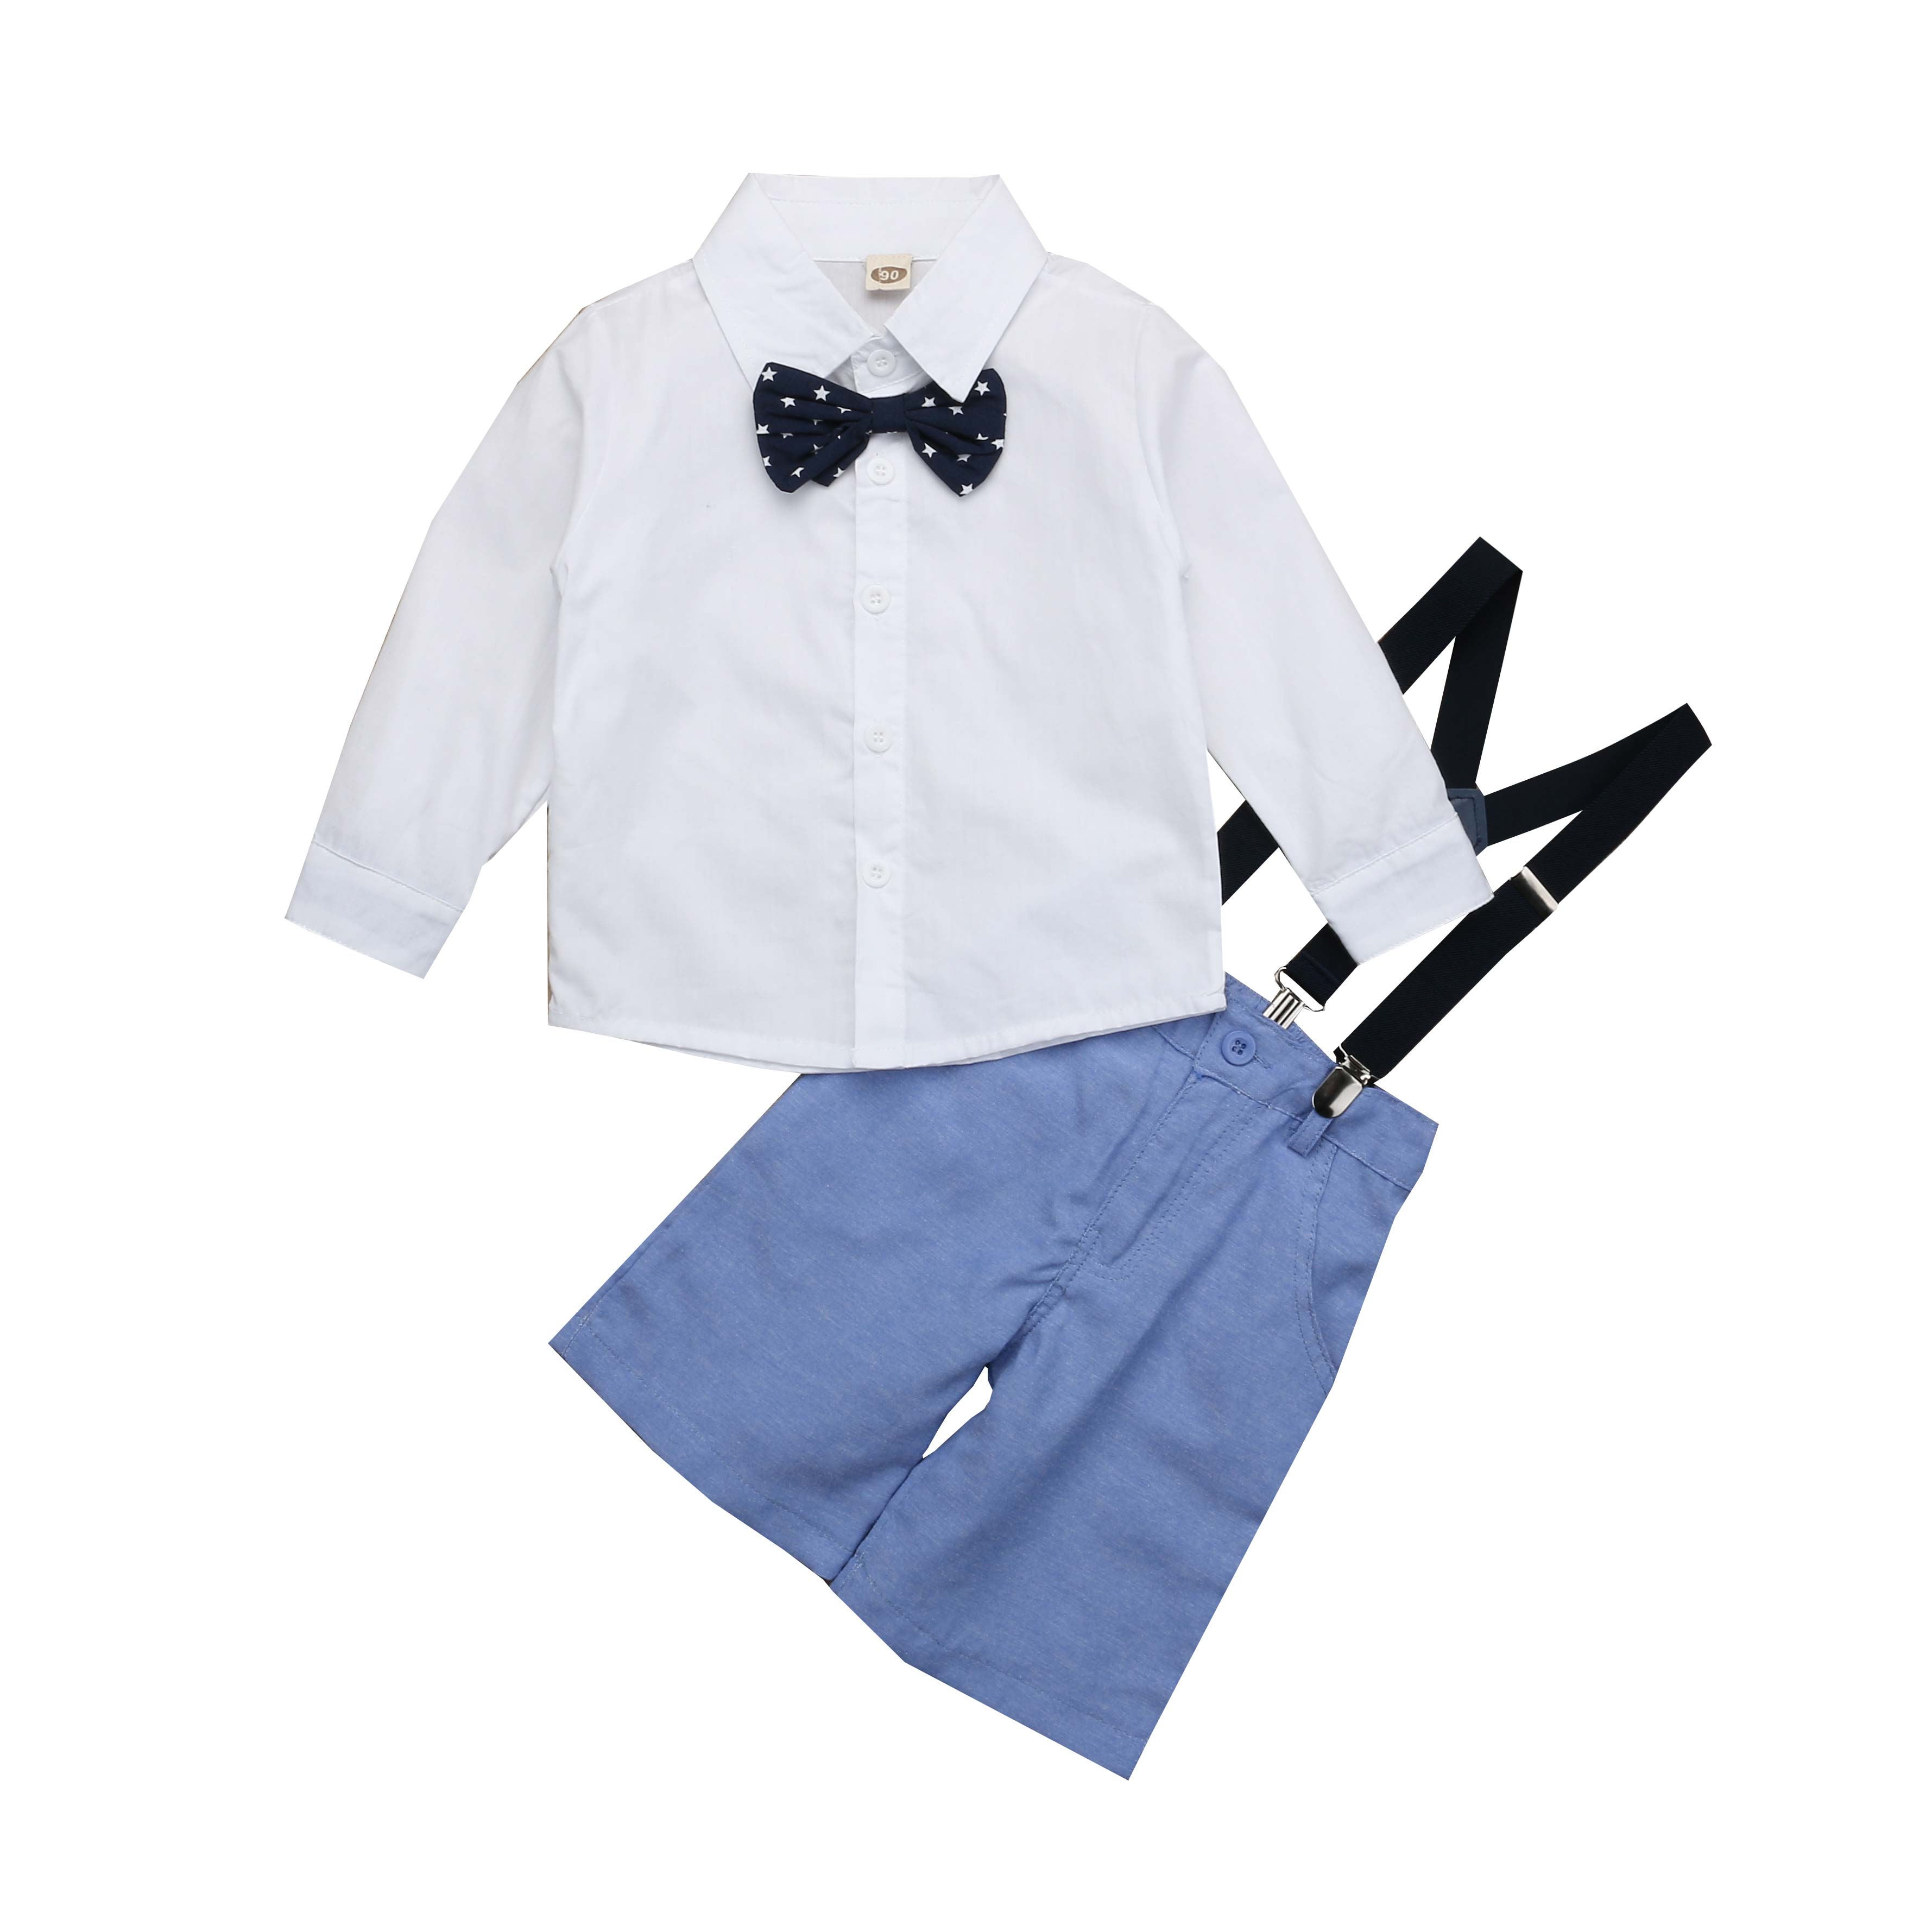 Pants Overalls sets Clothes For School party wedding Suits Kids Baby Boys Tops